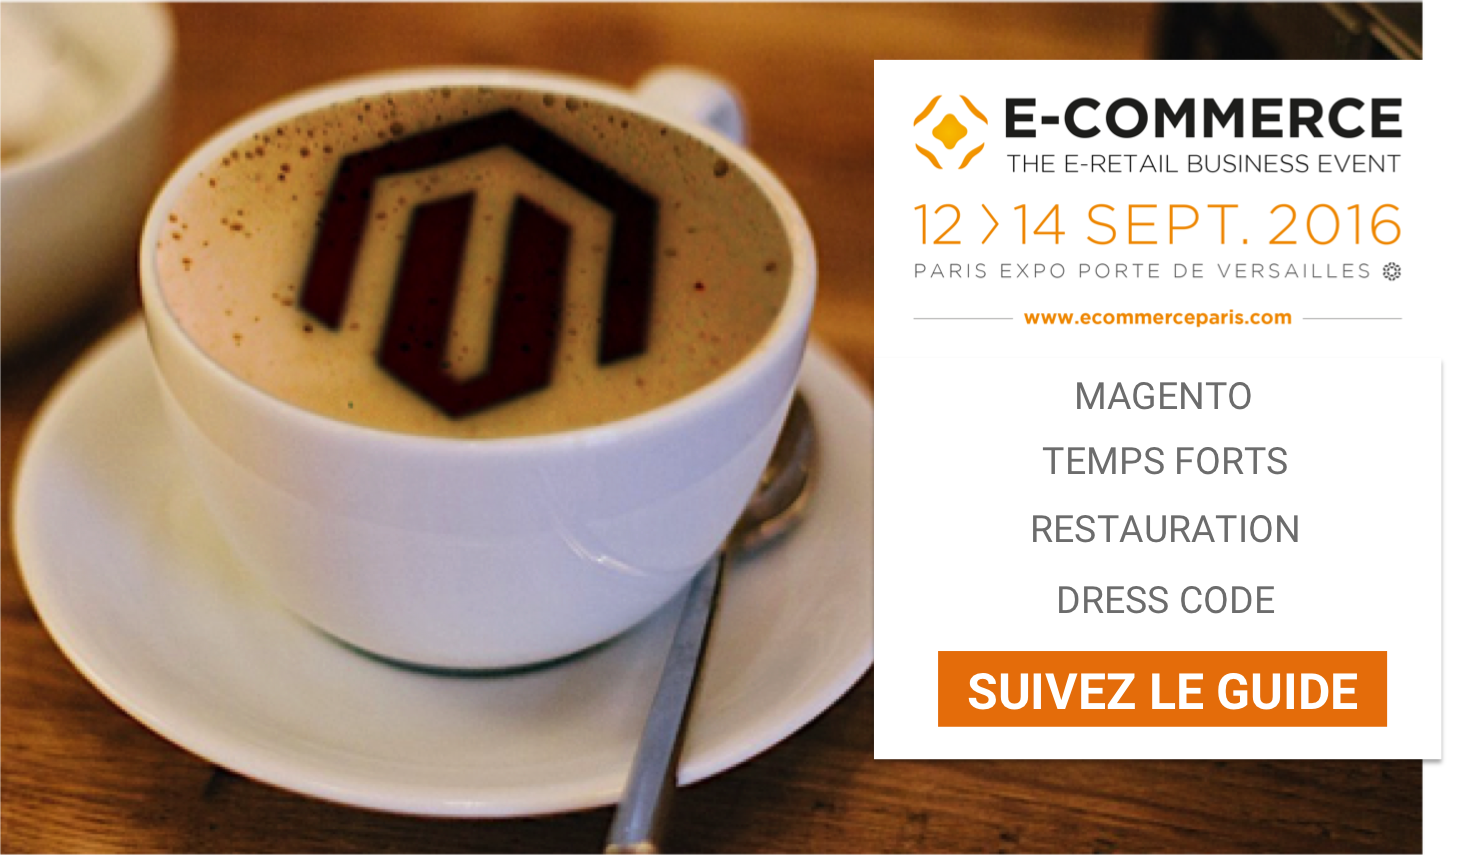 Le guide magento du salon e commerce paris porte de for Salon e commerce paris 2017